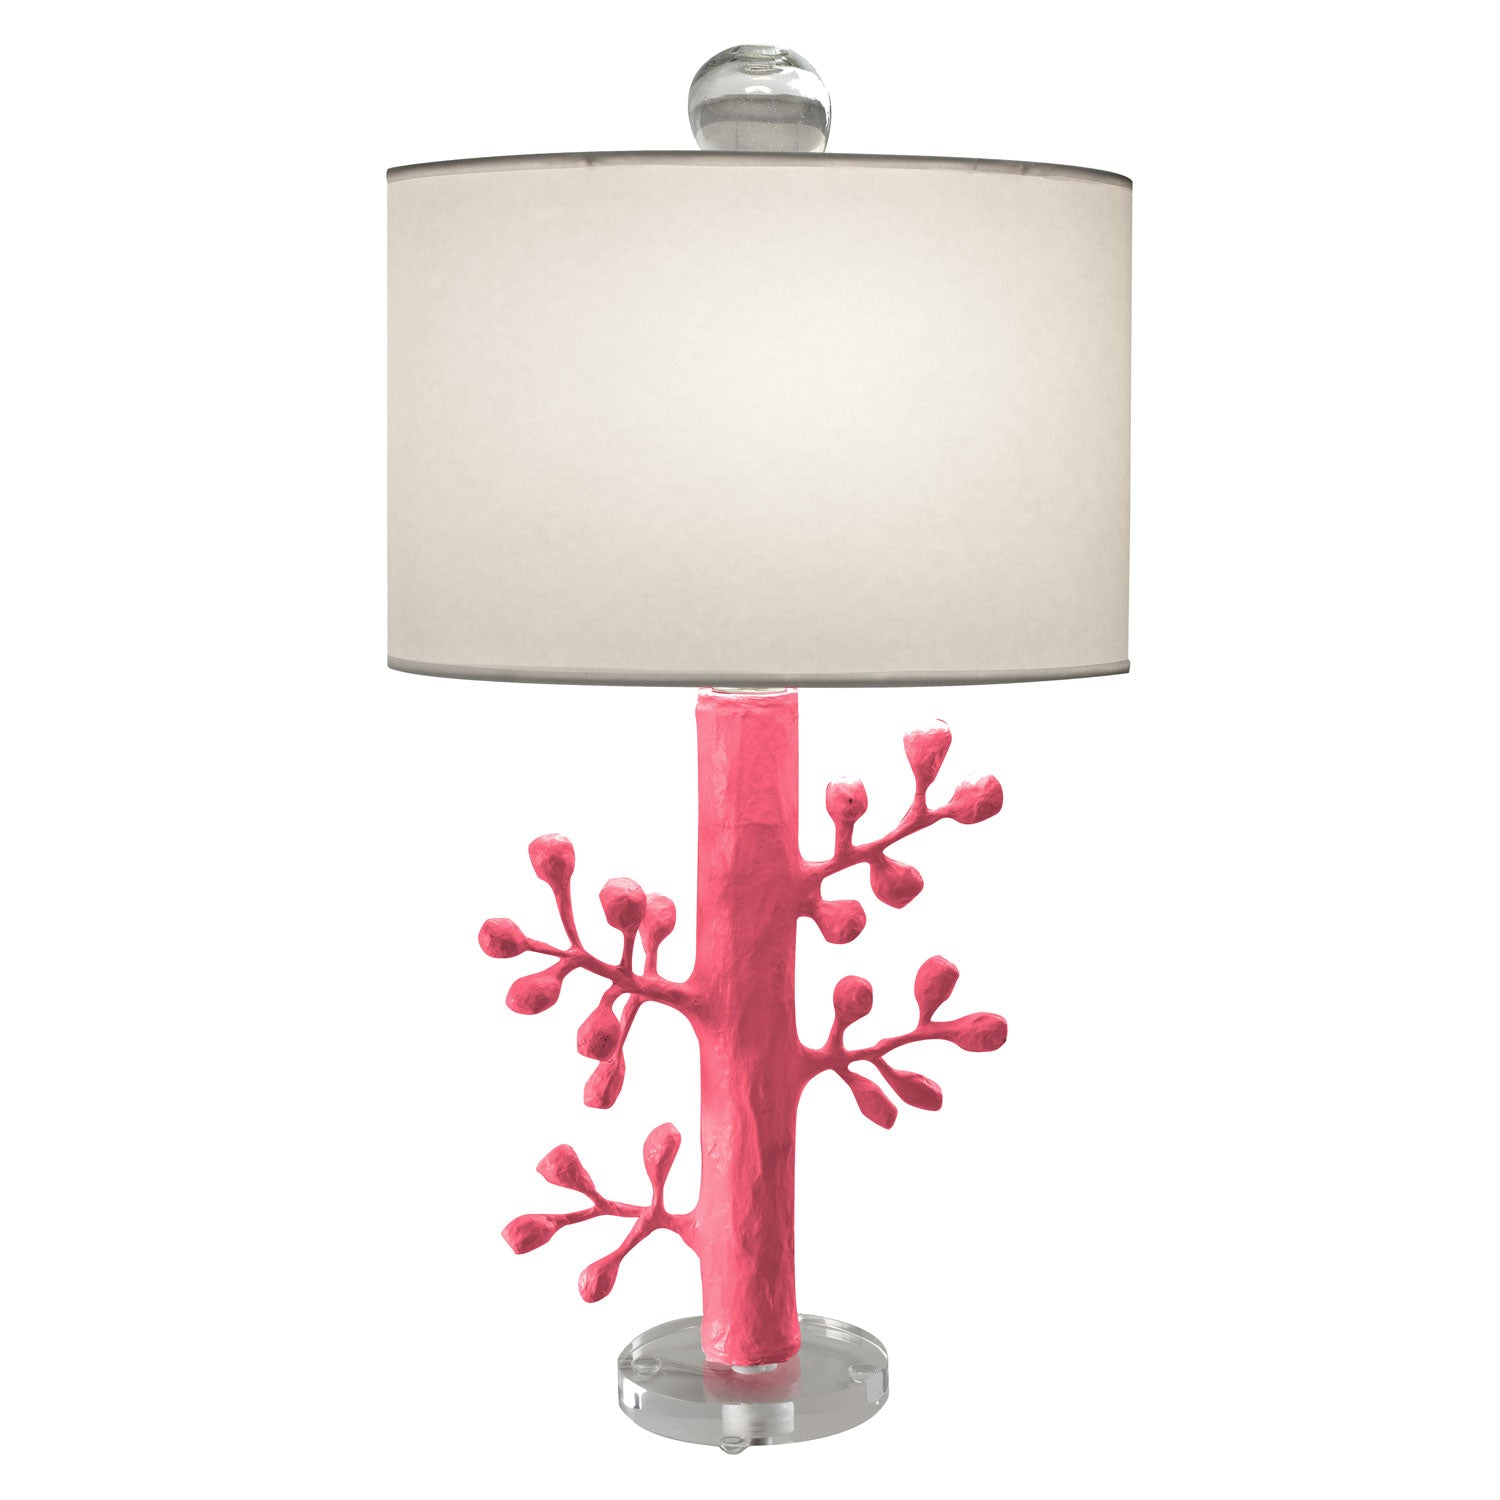 Pink papier mache Ava Lamp with branches by Stray Dog Designs